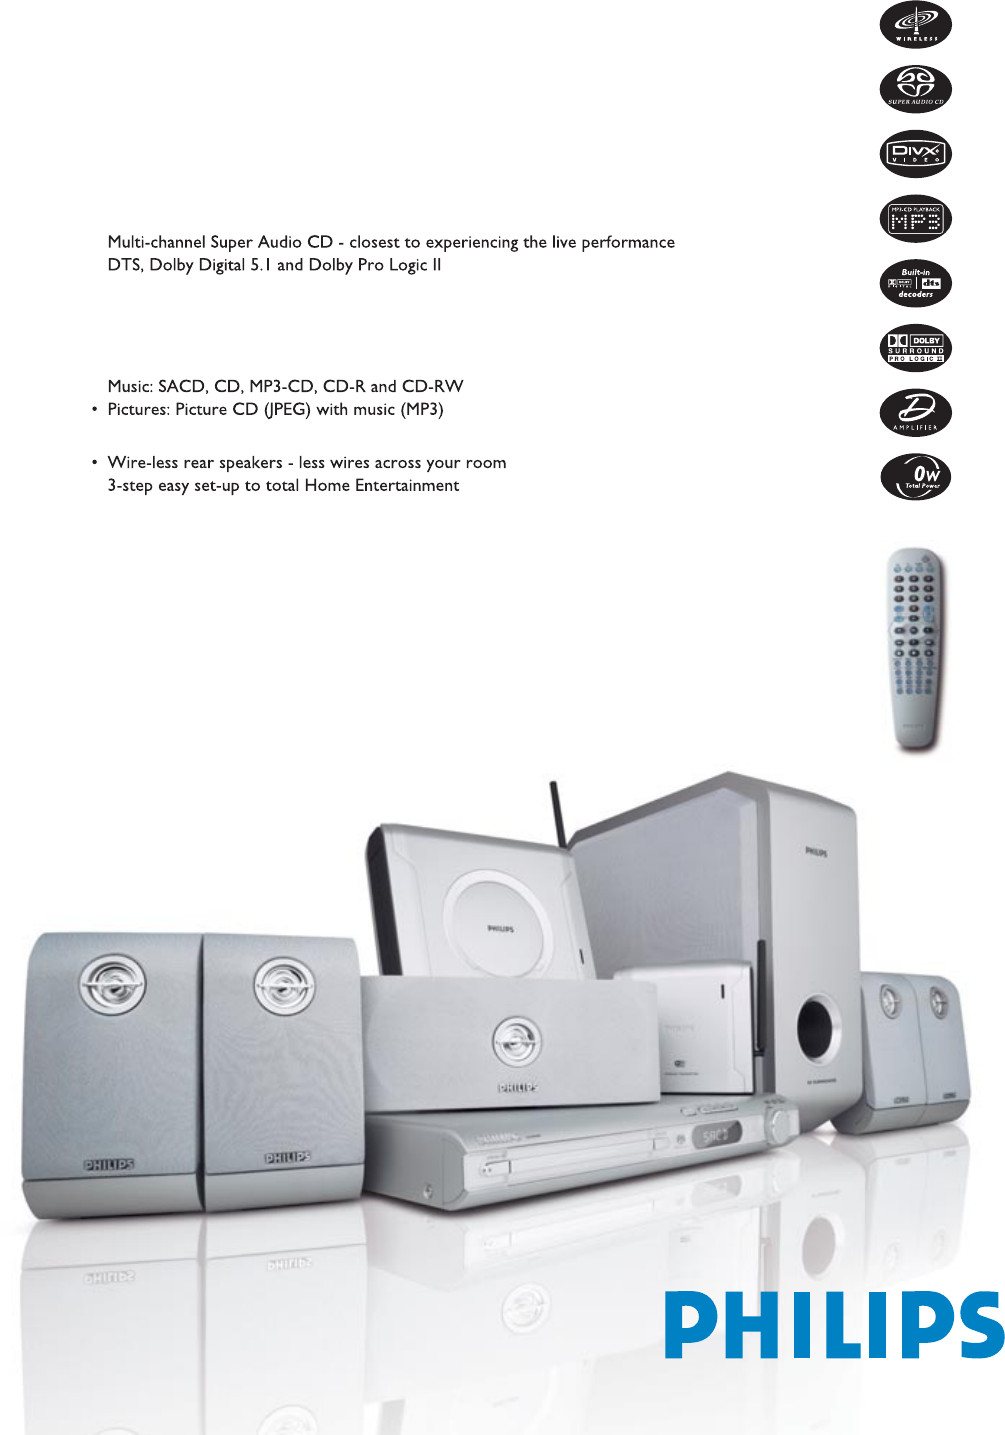 philips home theater system lx3950w user guide manualsonline com rh audio manualsonline com home theater philips hts6600 manual home theater philips hts6600 manual